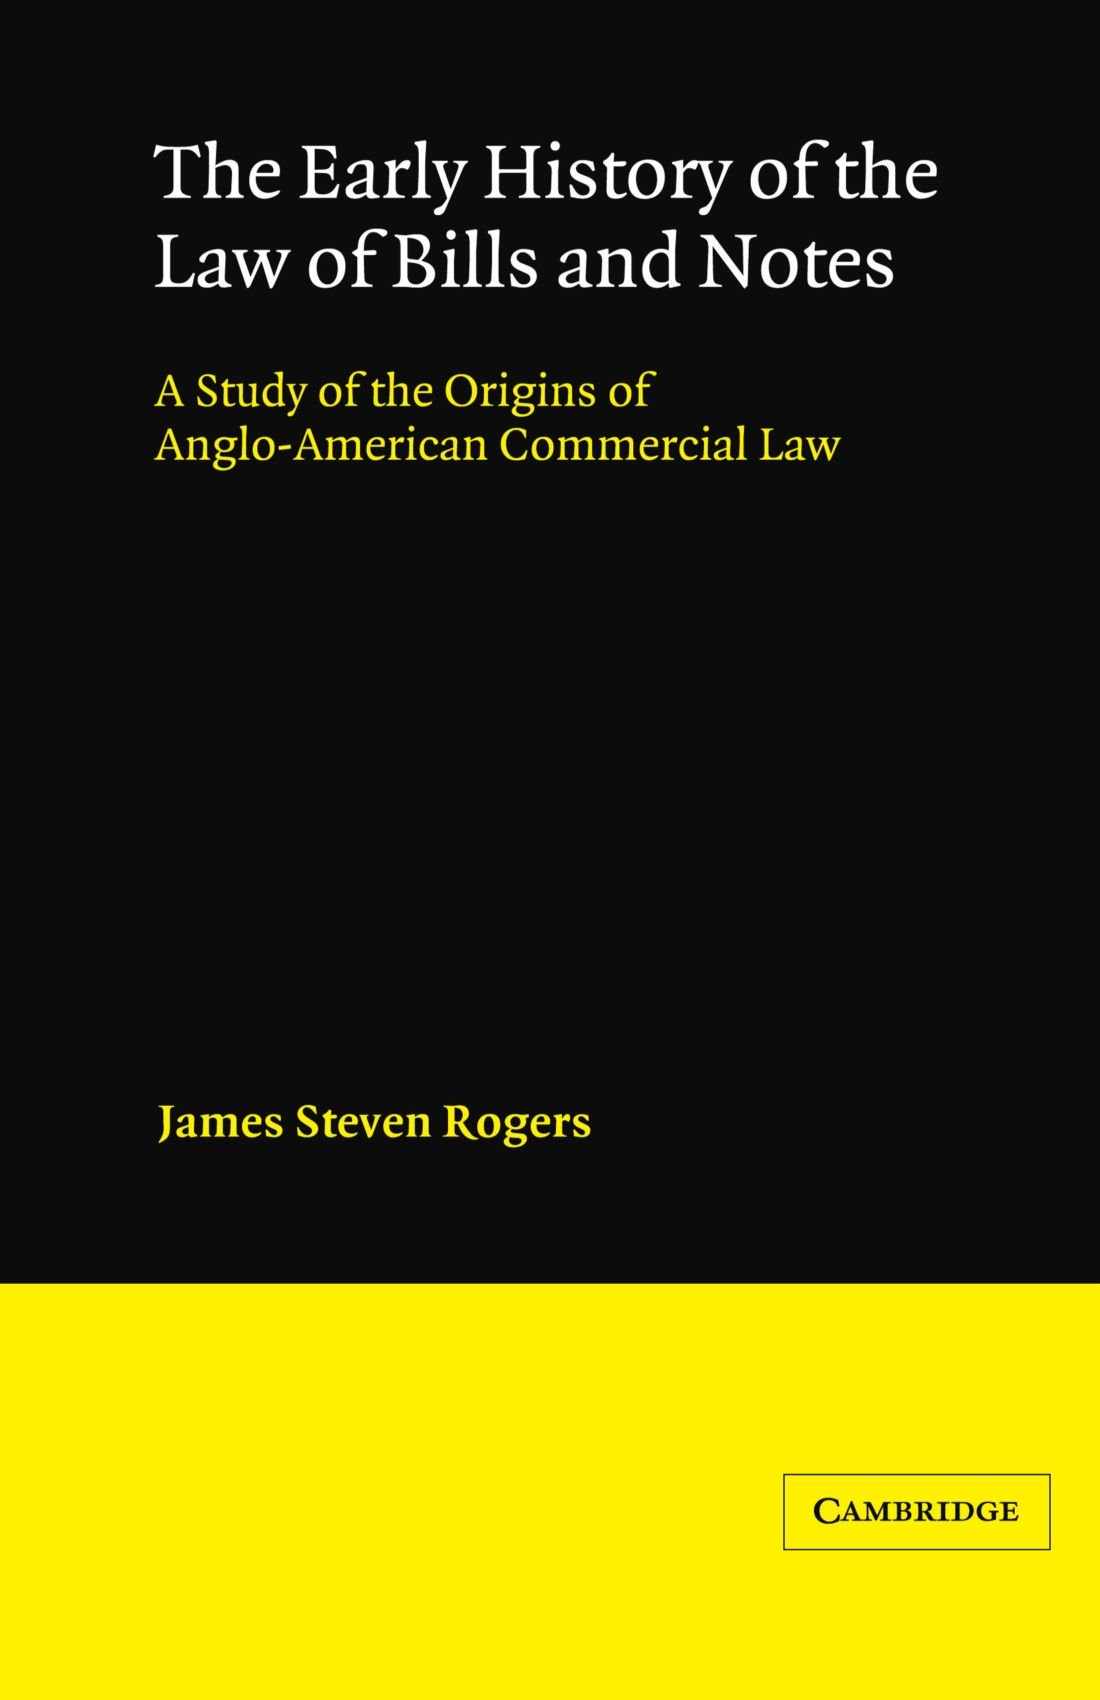 The Early History of the Law of Bills and Notes: A Study of the Origins of Anglo-American Commercial Law (Cambridge Studies in English Legal History) pdf